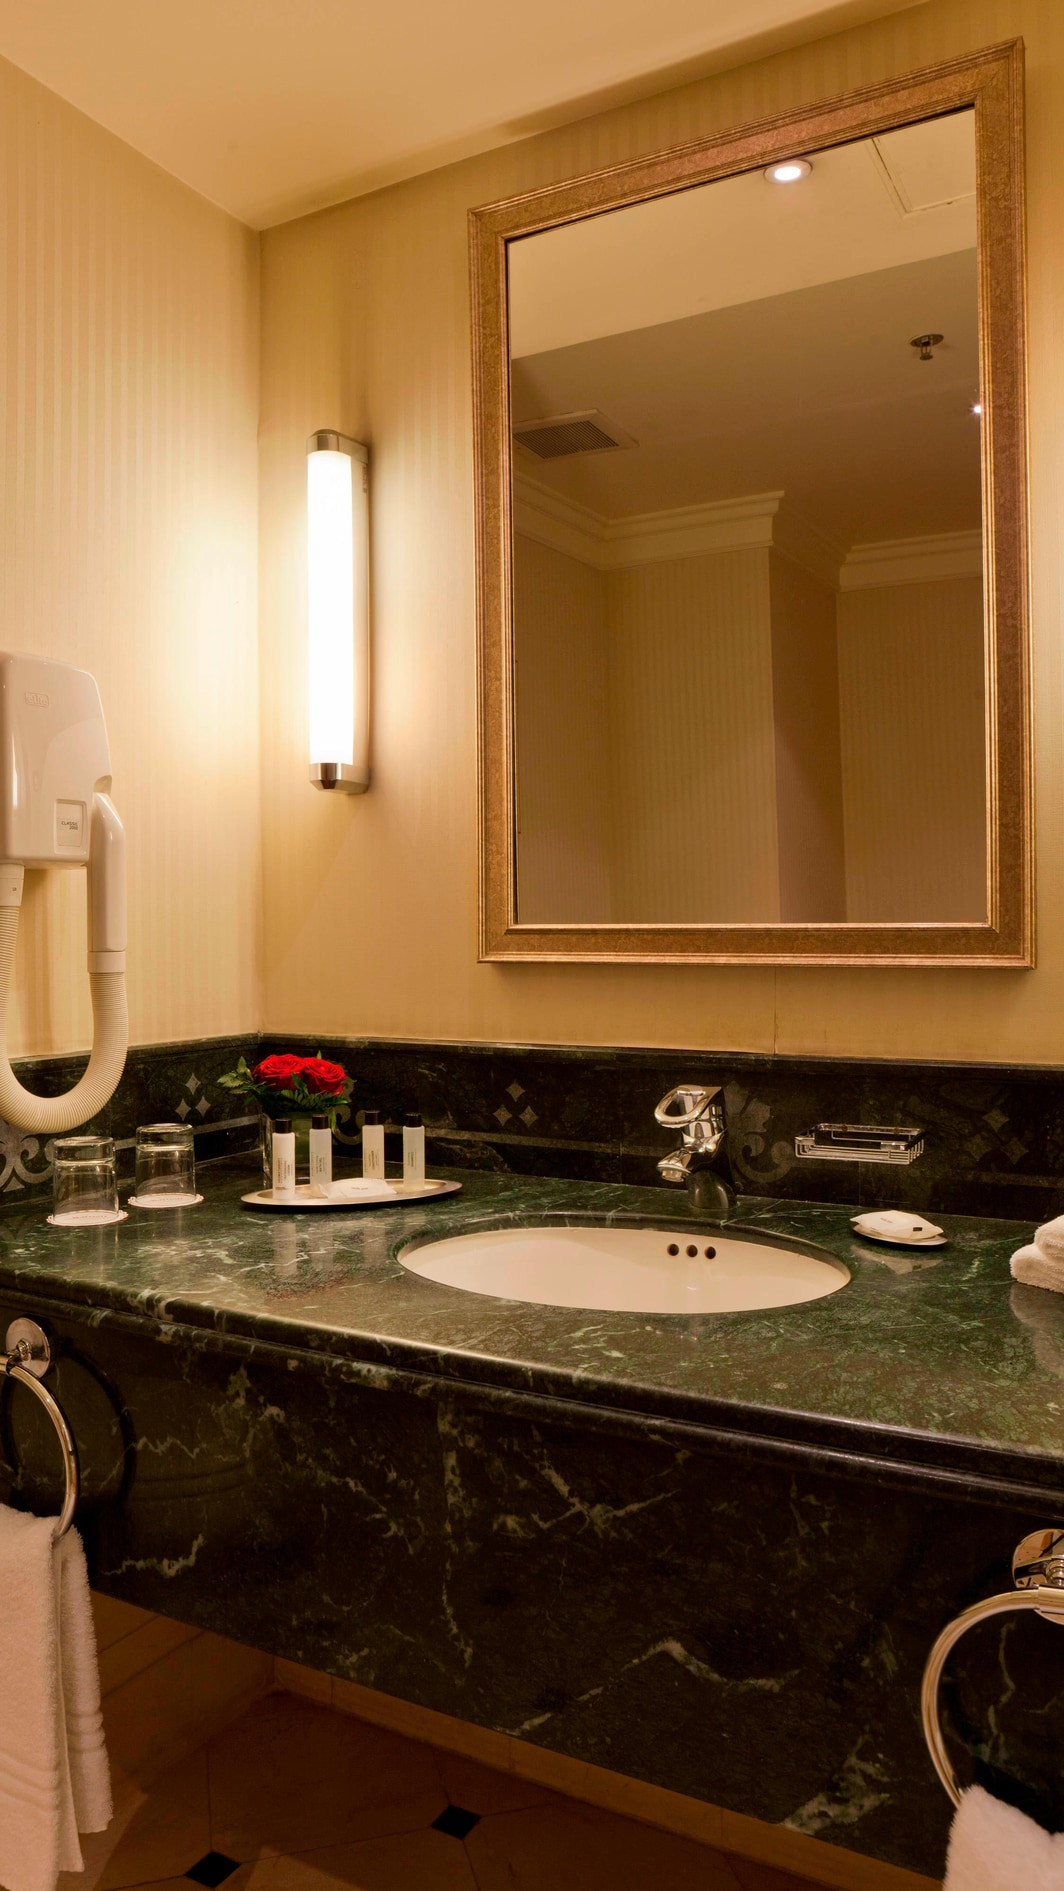 Marriott Madinah Bathroom